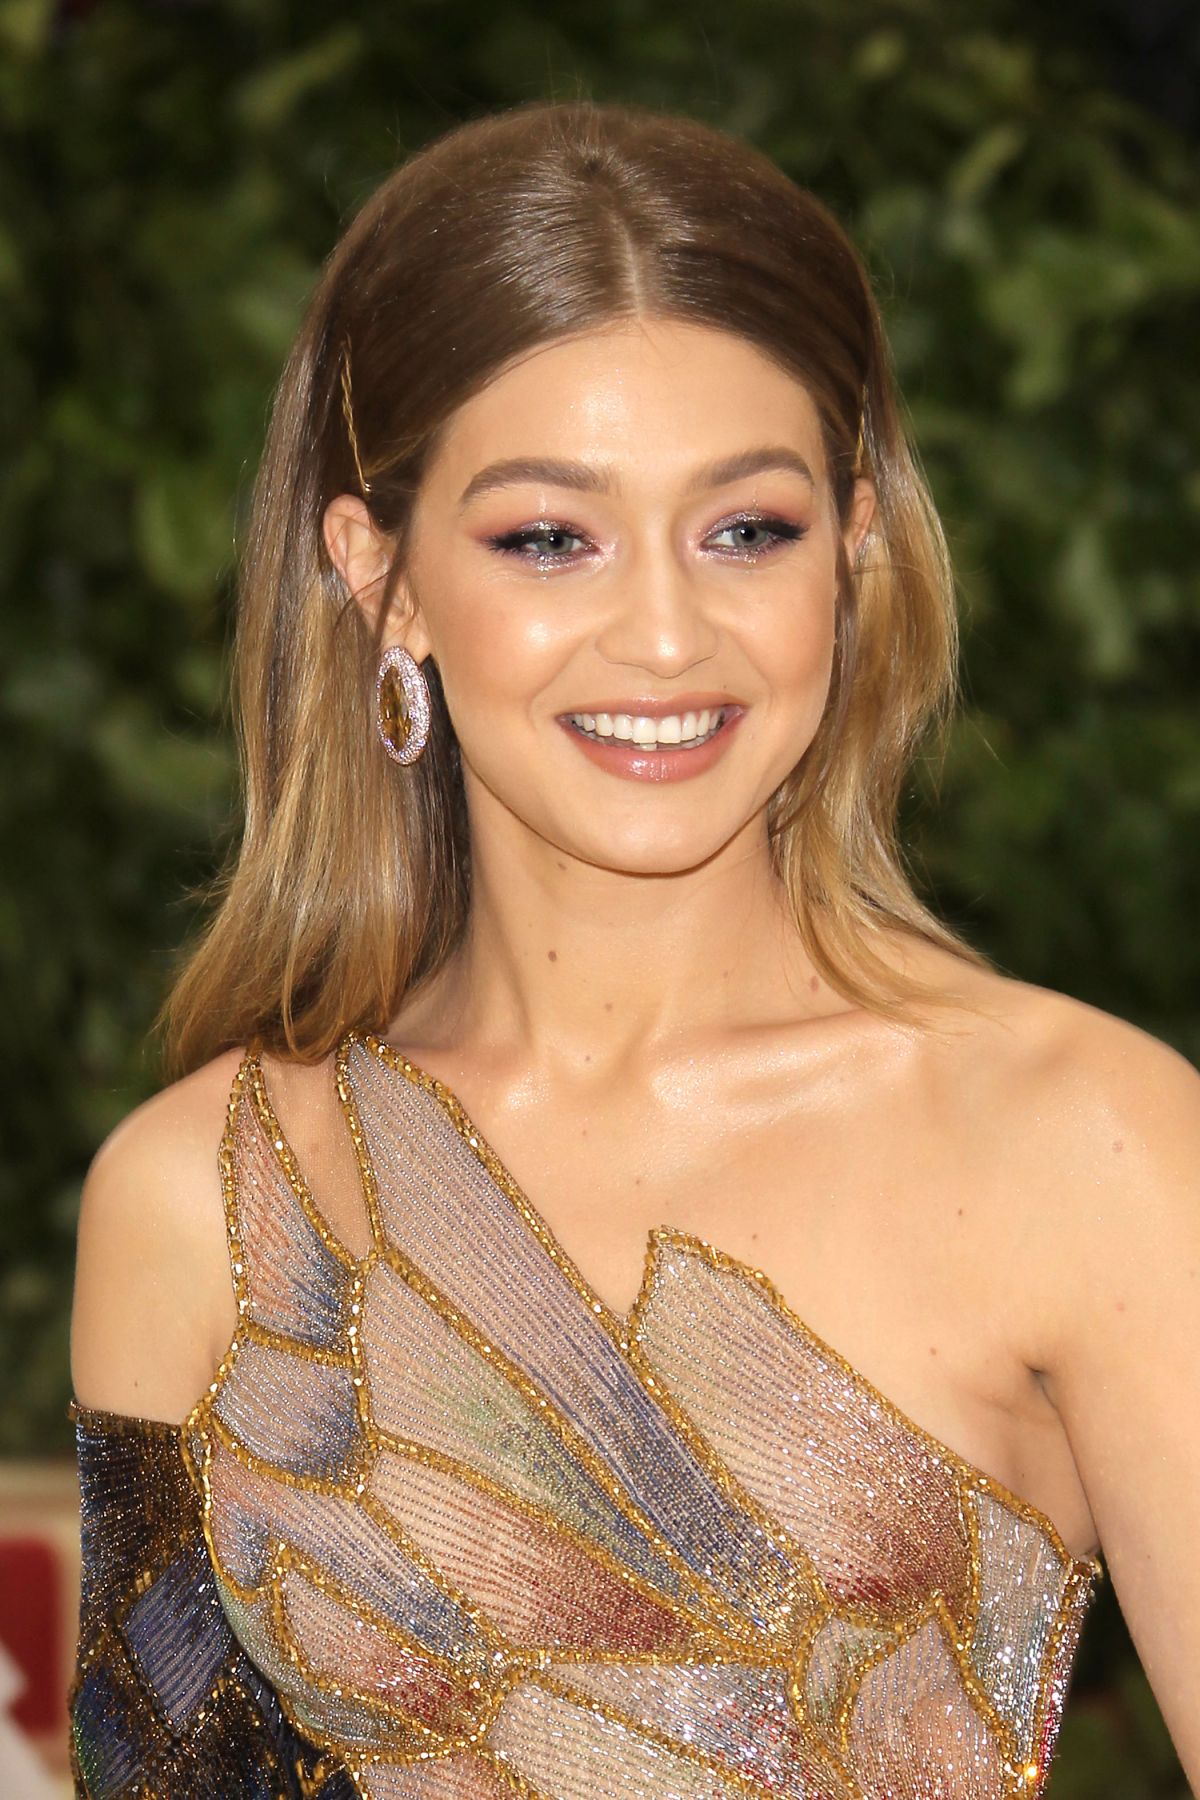 gigi-hadid-at-met-gala-2018-in-new-york-05-07-2018-2.jpg